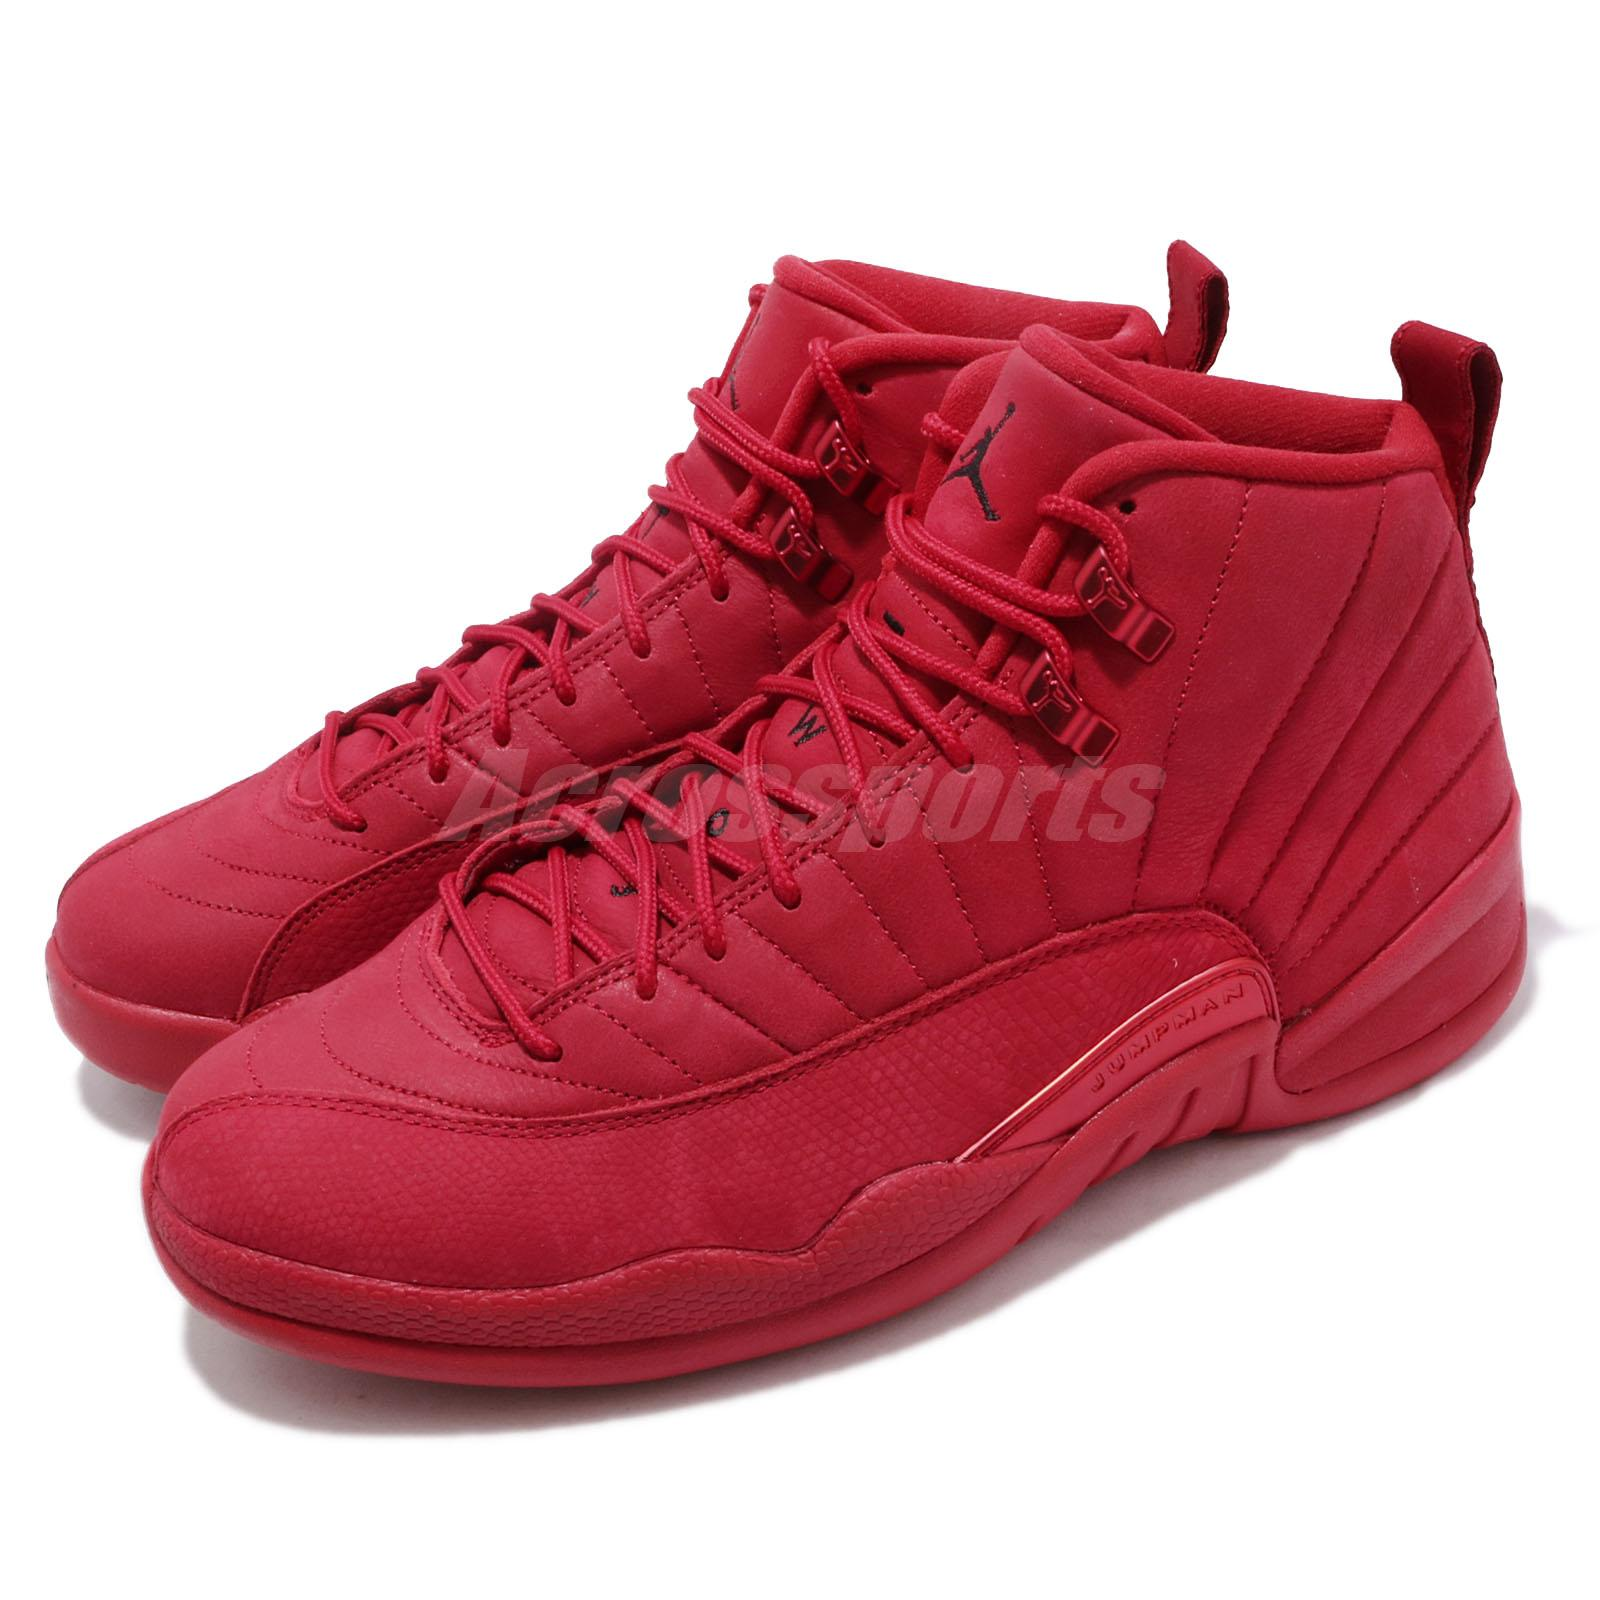 brand new 6cf73 d5ec3 Details about Nike Air Jordan 12 Retro XII Gym Red AJ12 Bulls Toro Sneakers  2018 130690-601